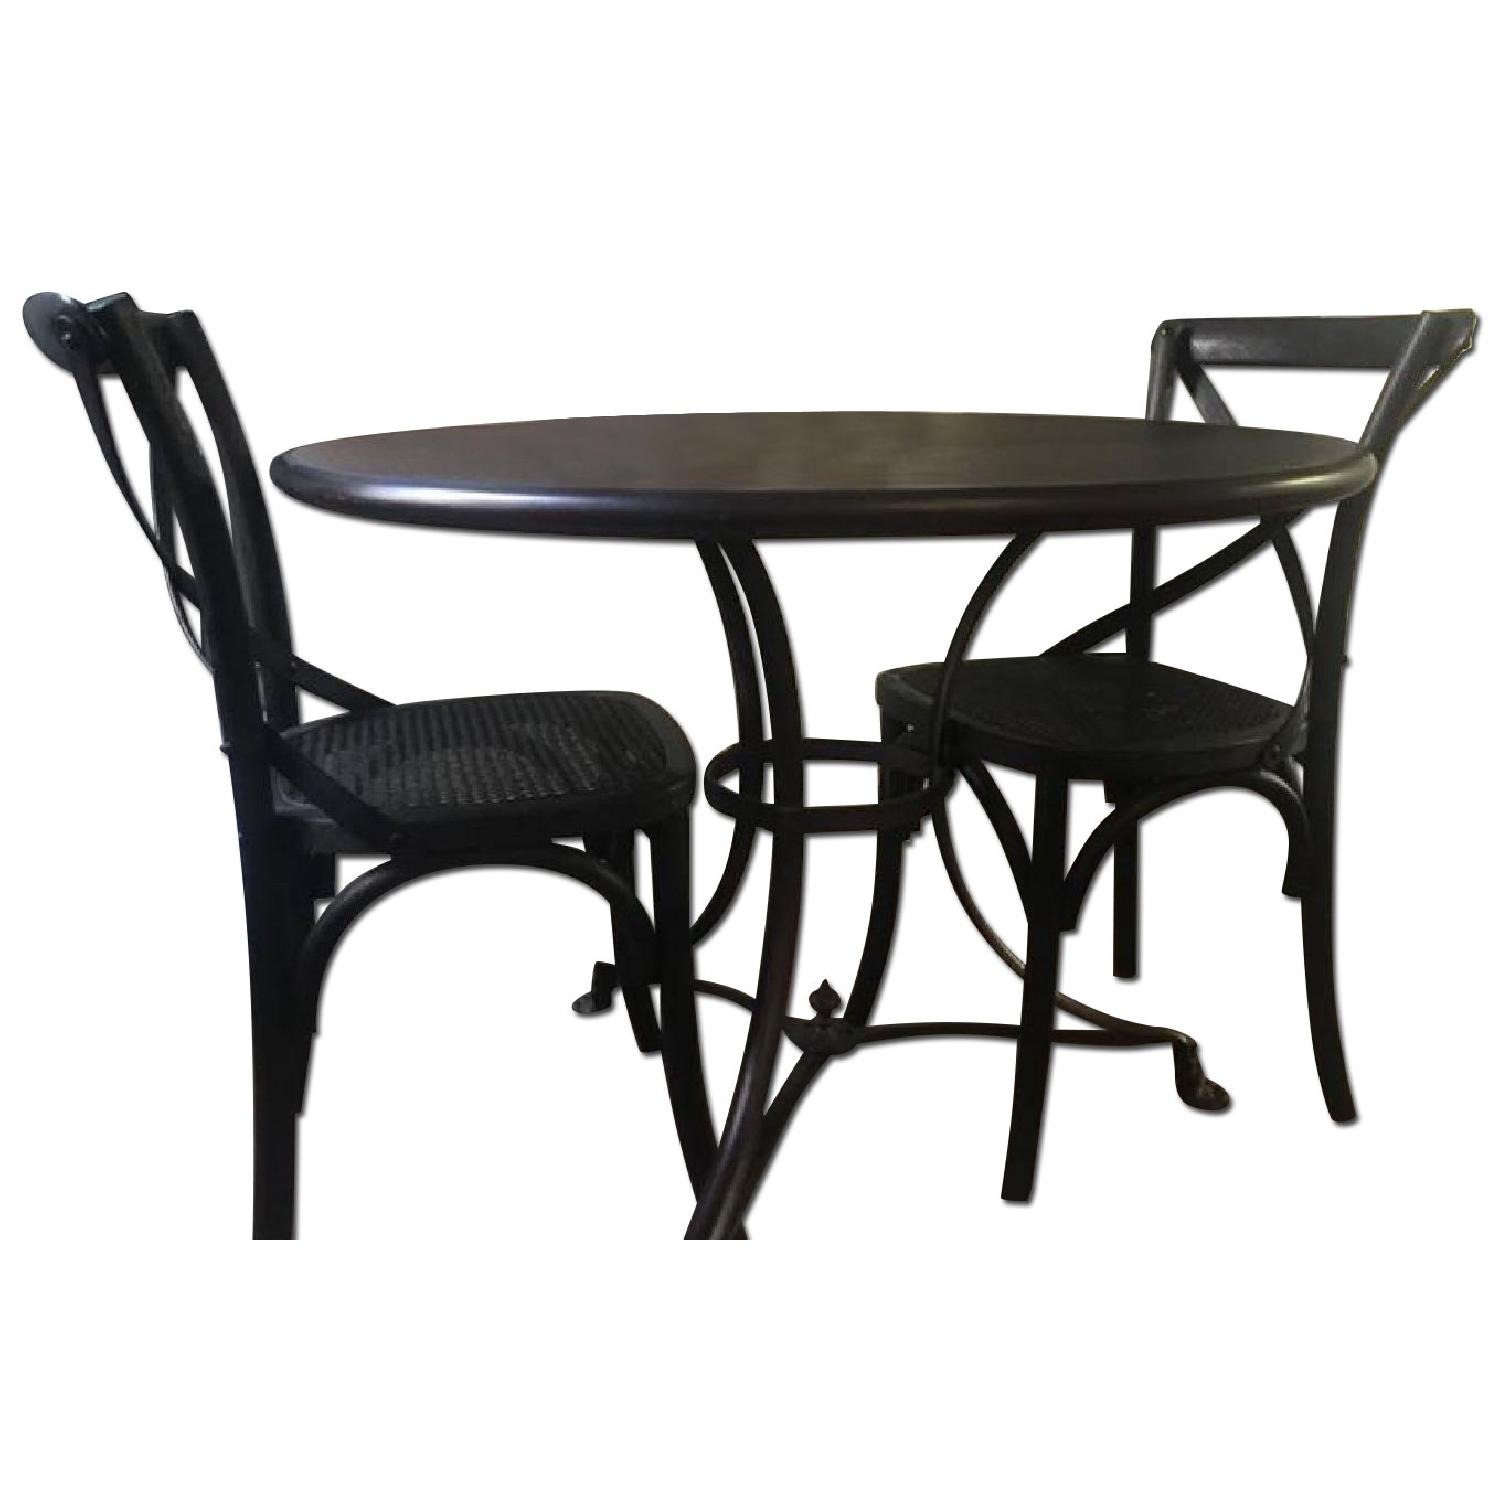 Restoration Hardware 19th C. French Lion's Foot Brasserie Table w/ 2 Chairs - image-0